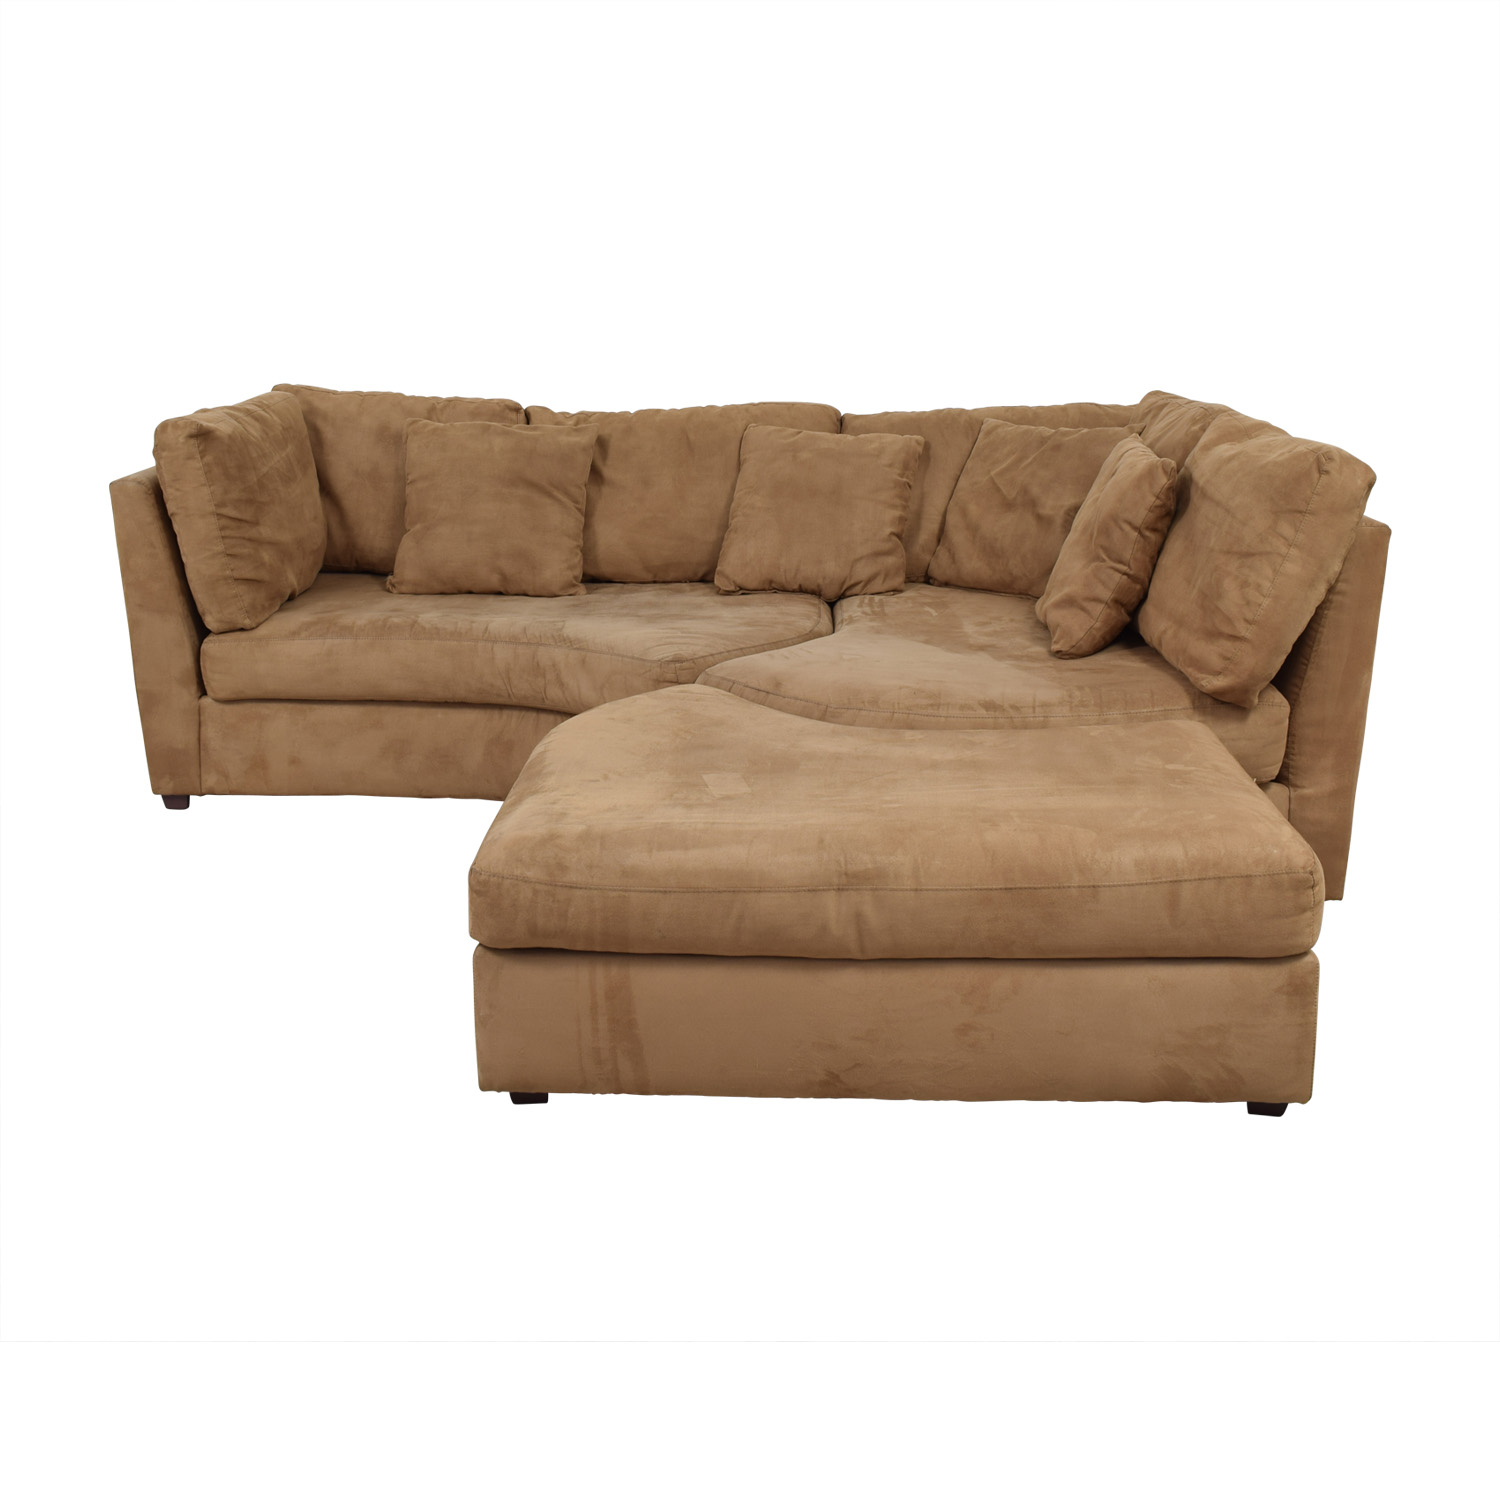 Raymour & Flanigan Raymour & Flanigan Sectional Sofa With Ottoman